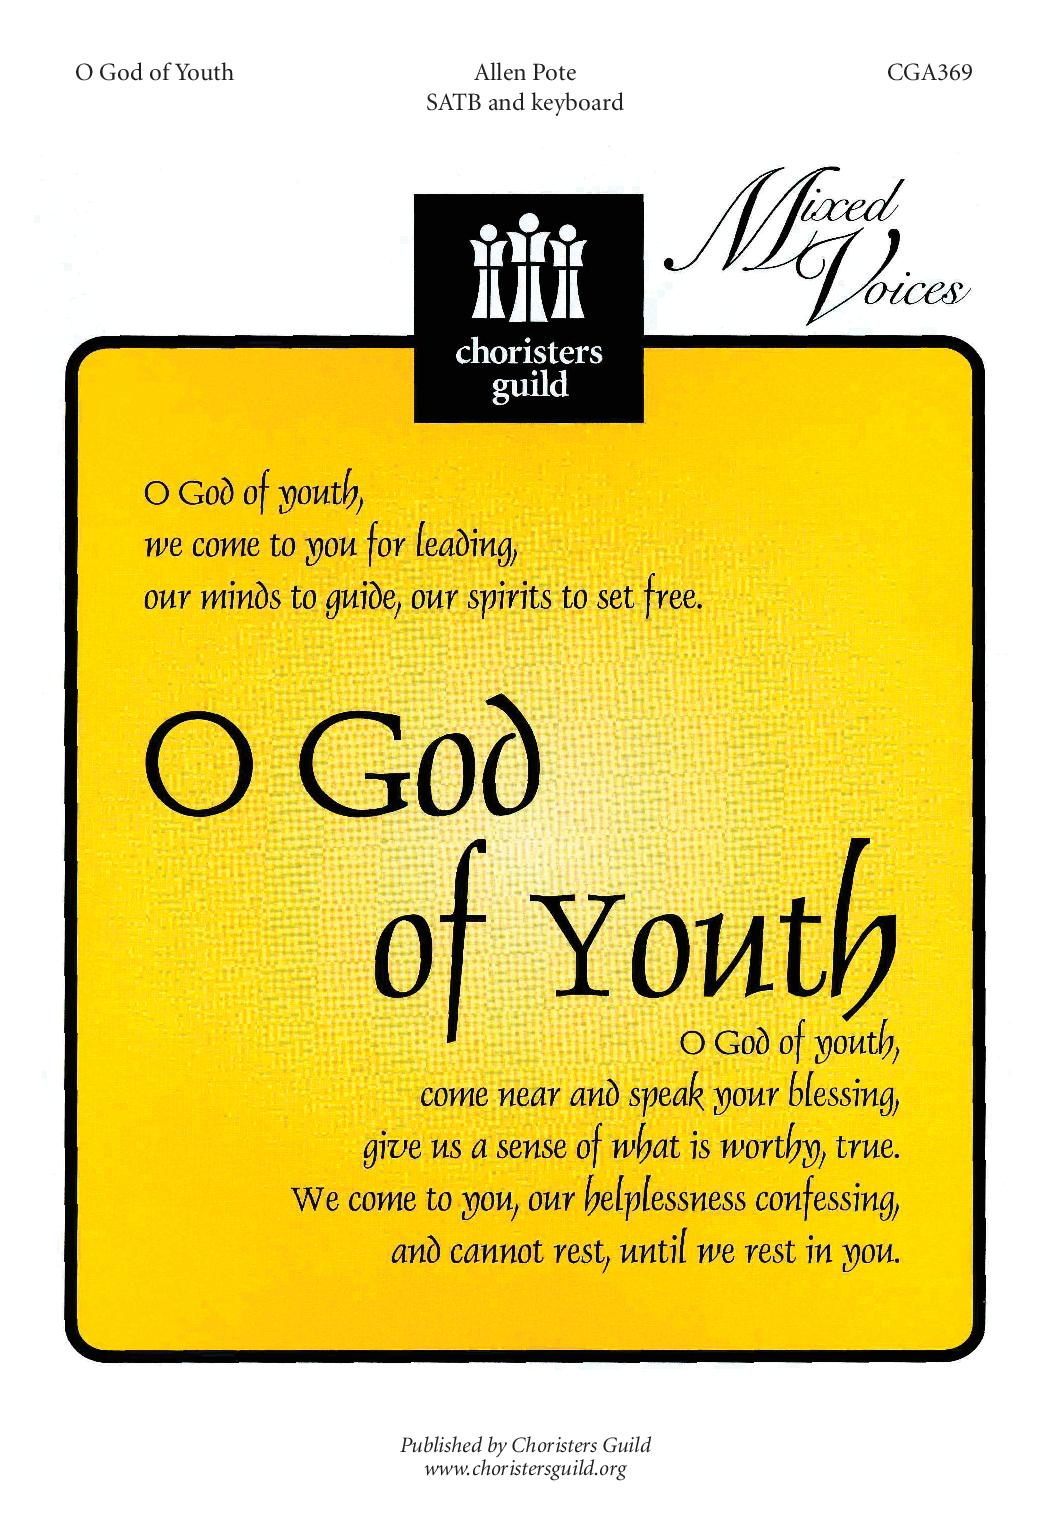 O God of Youth